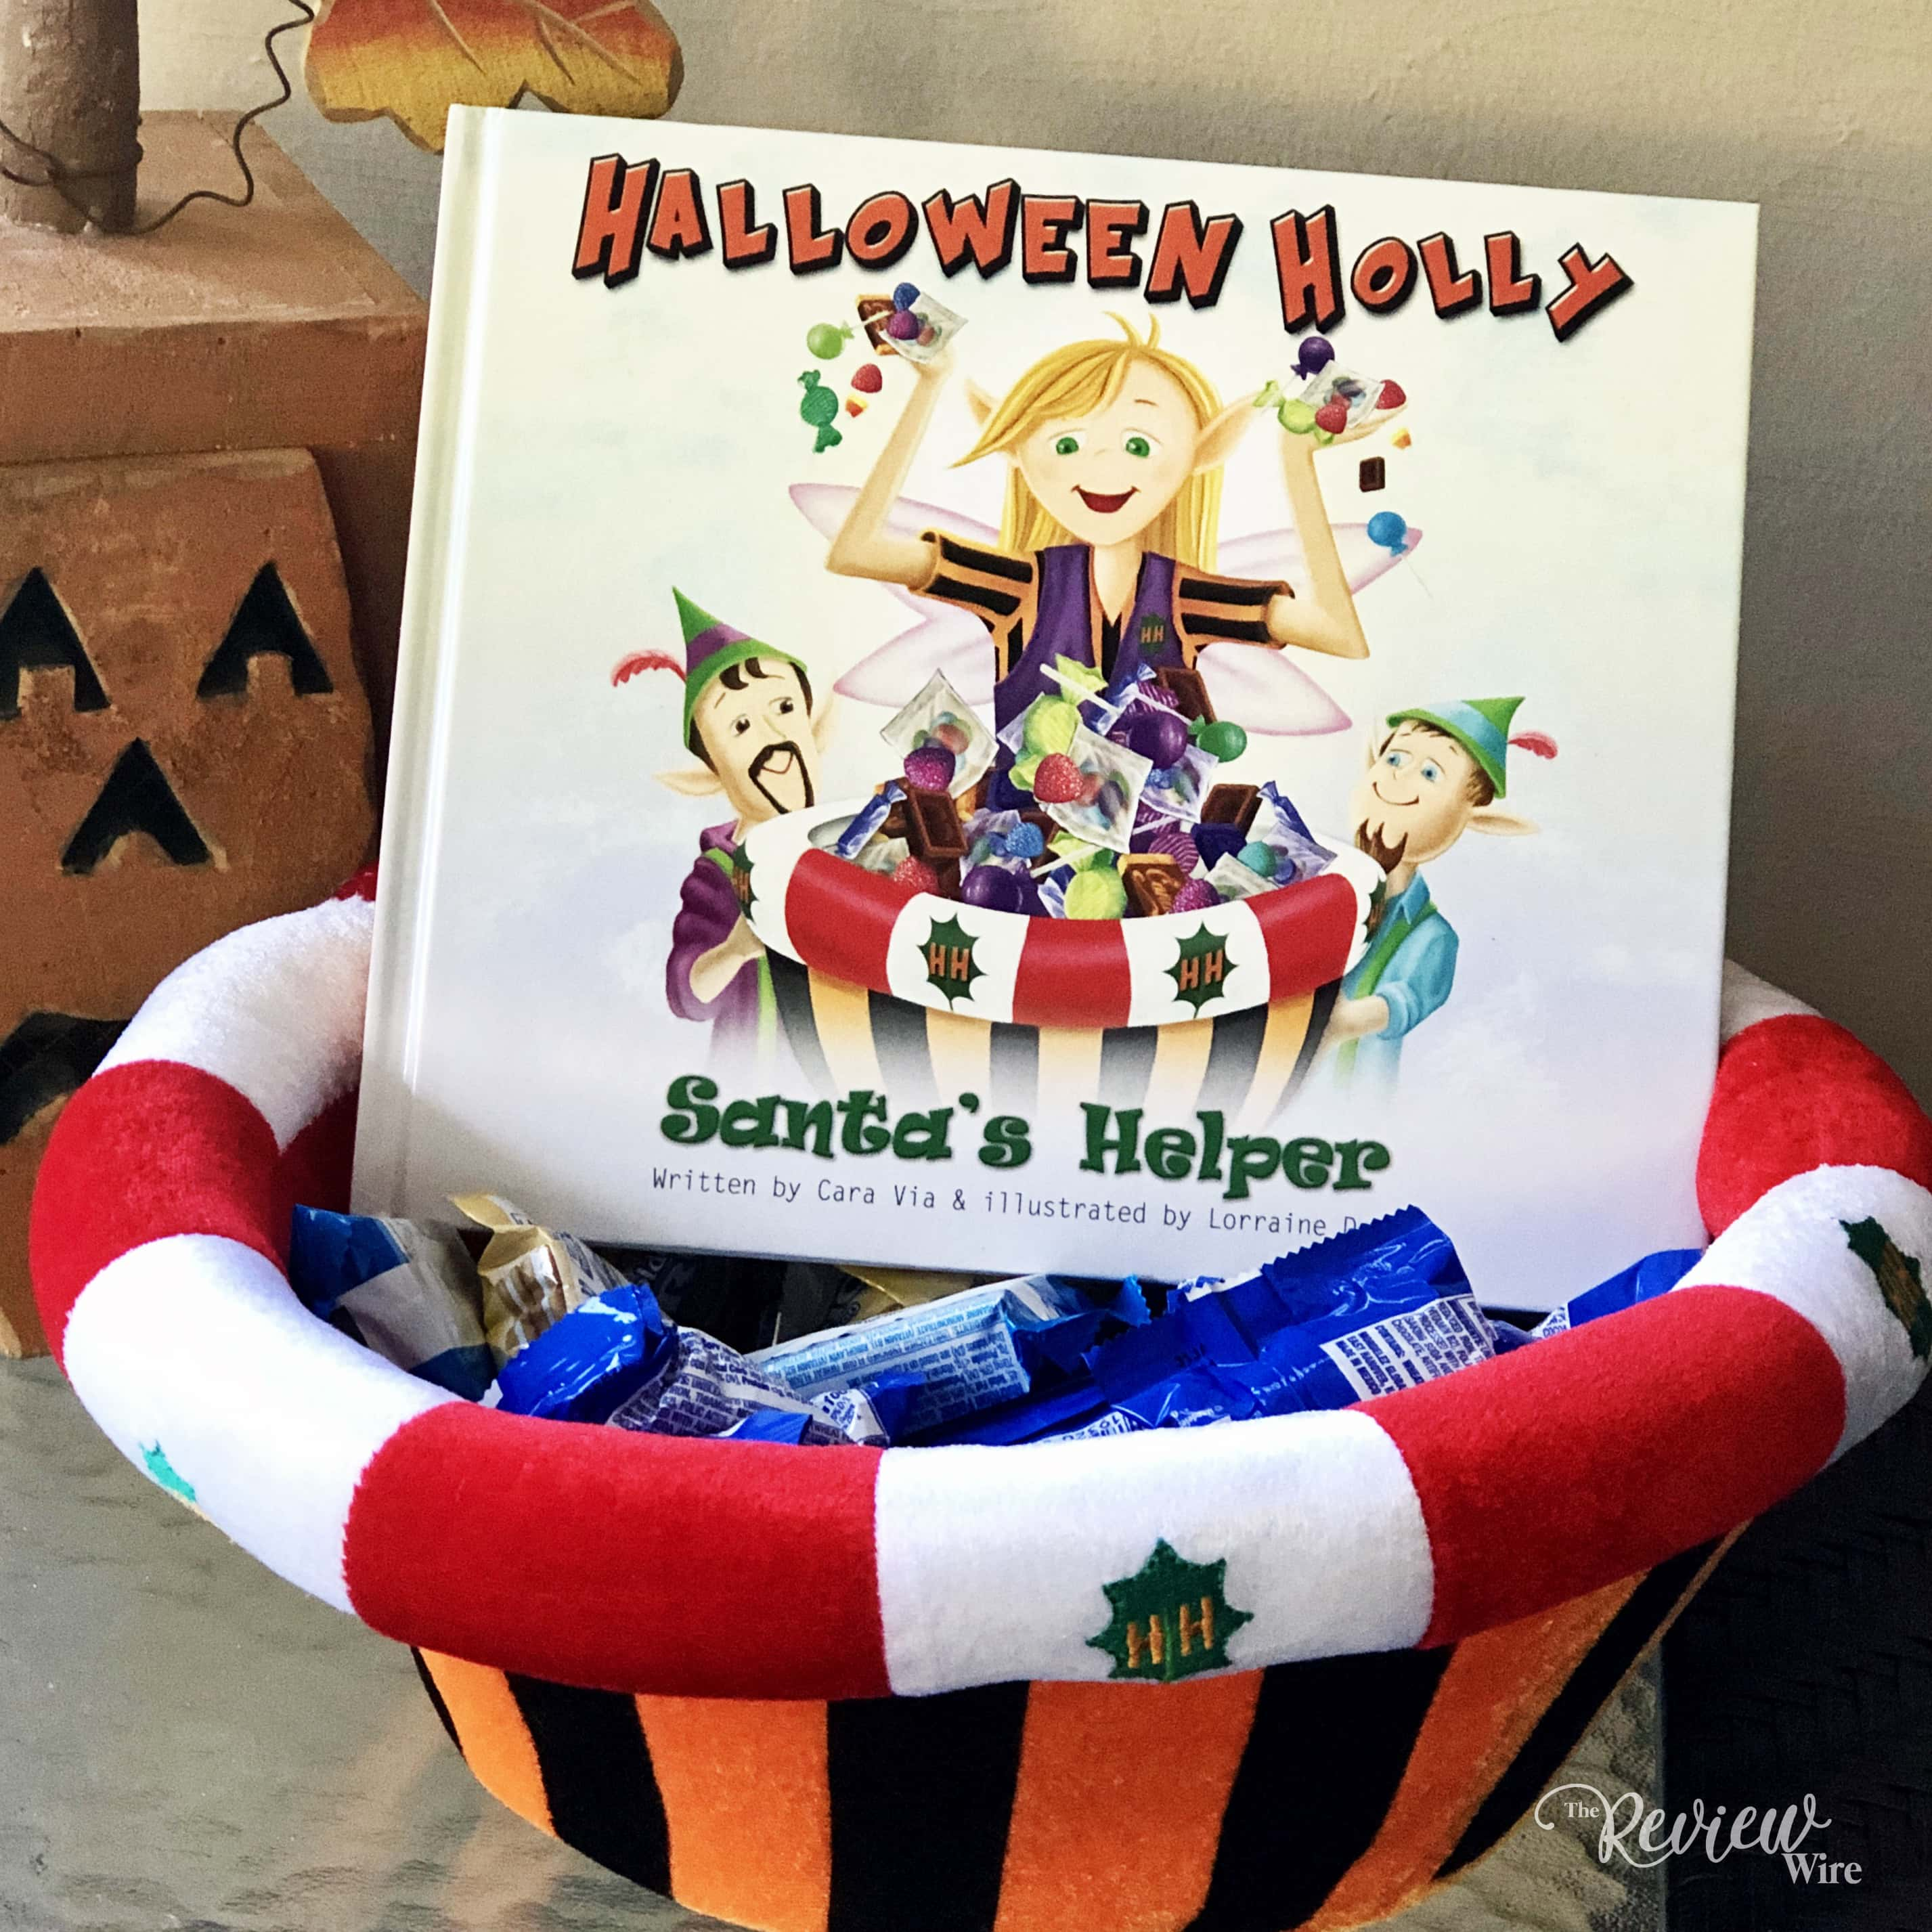 The Review Wire - Halloween Holly Santa's Helper Gift Set